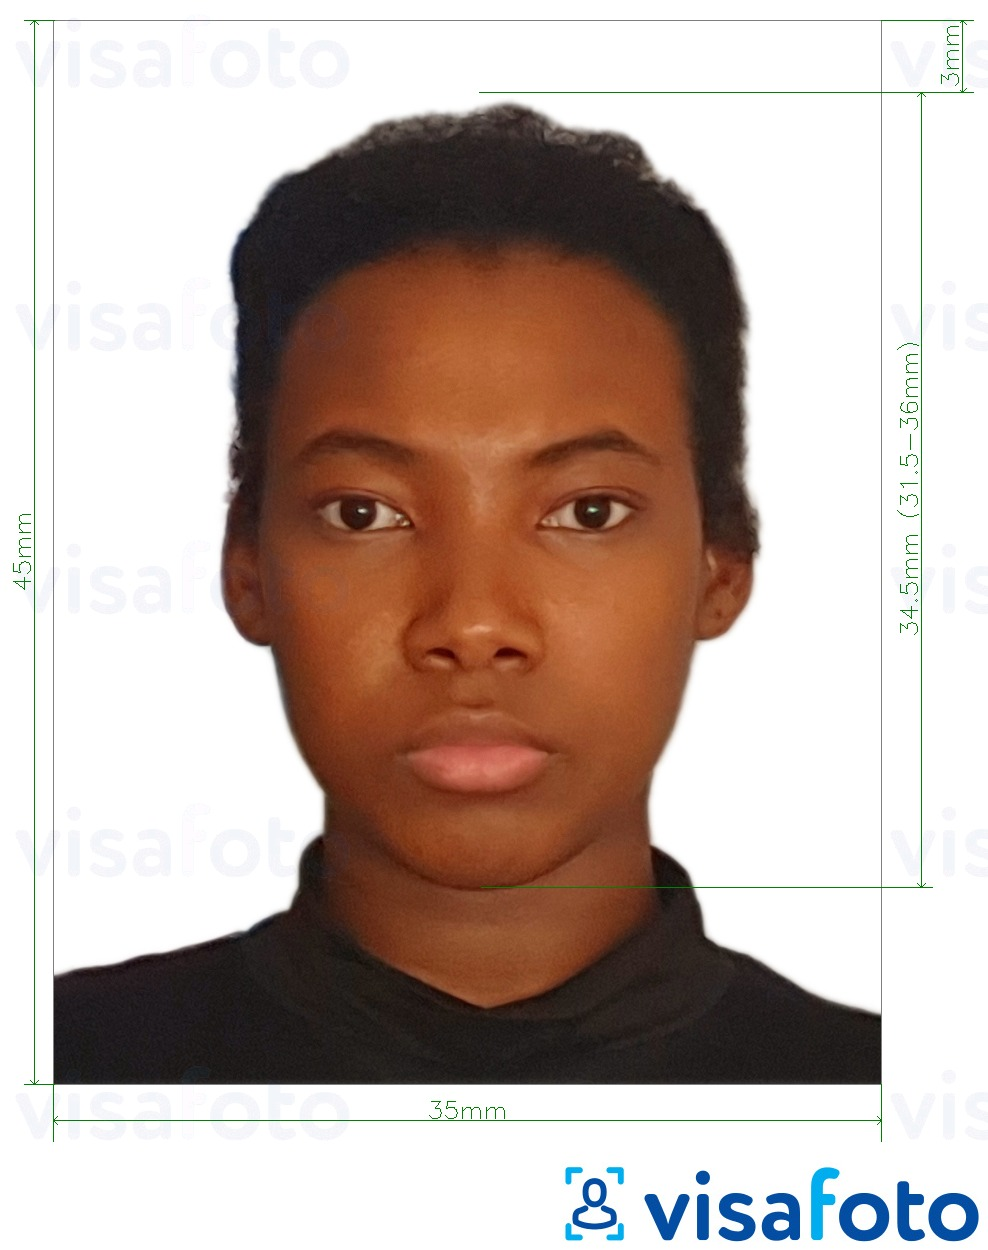 Example of photo for Nigeria visa 3.5x4.5 cm (35x45 mm) with exact size specification